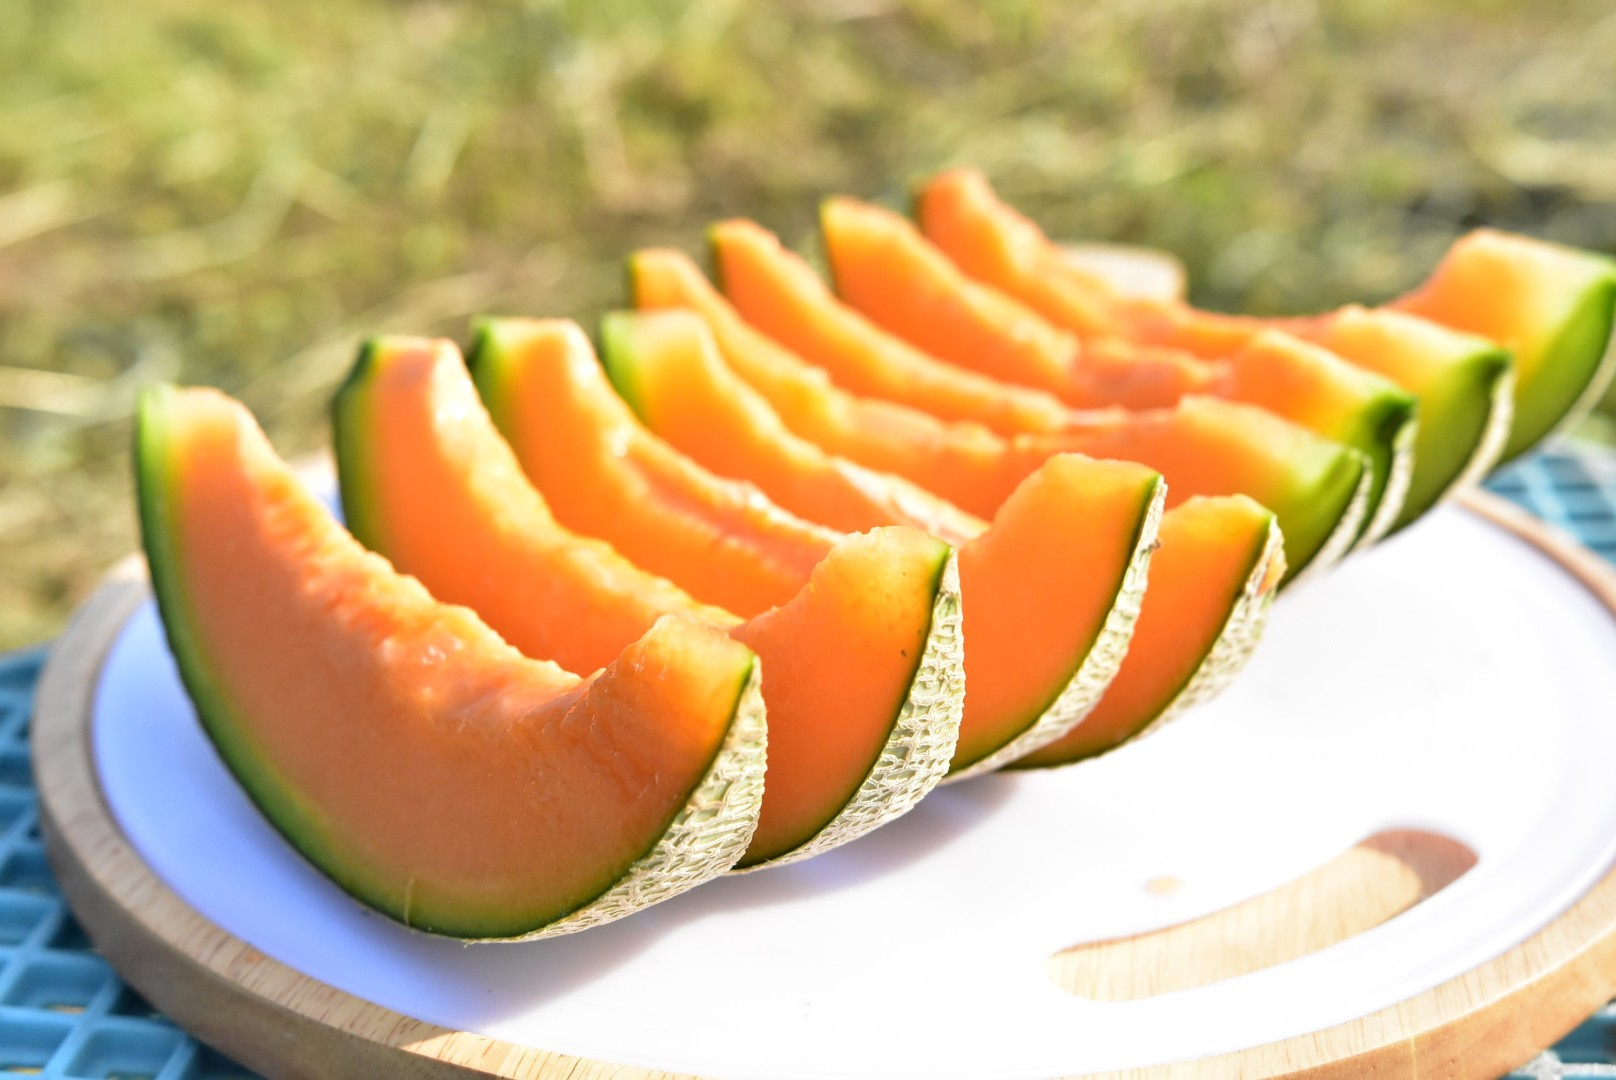 We love Melon and Water Melon!